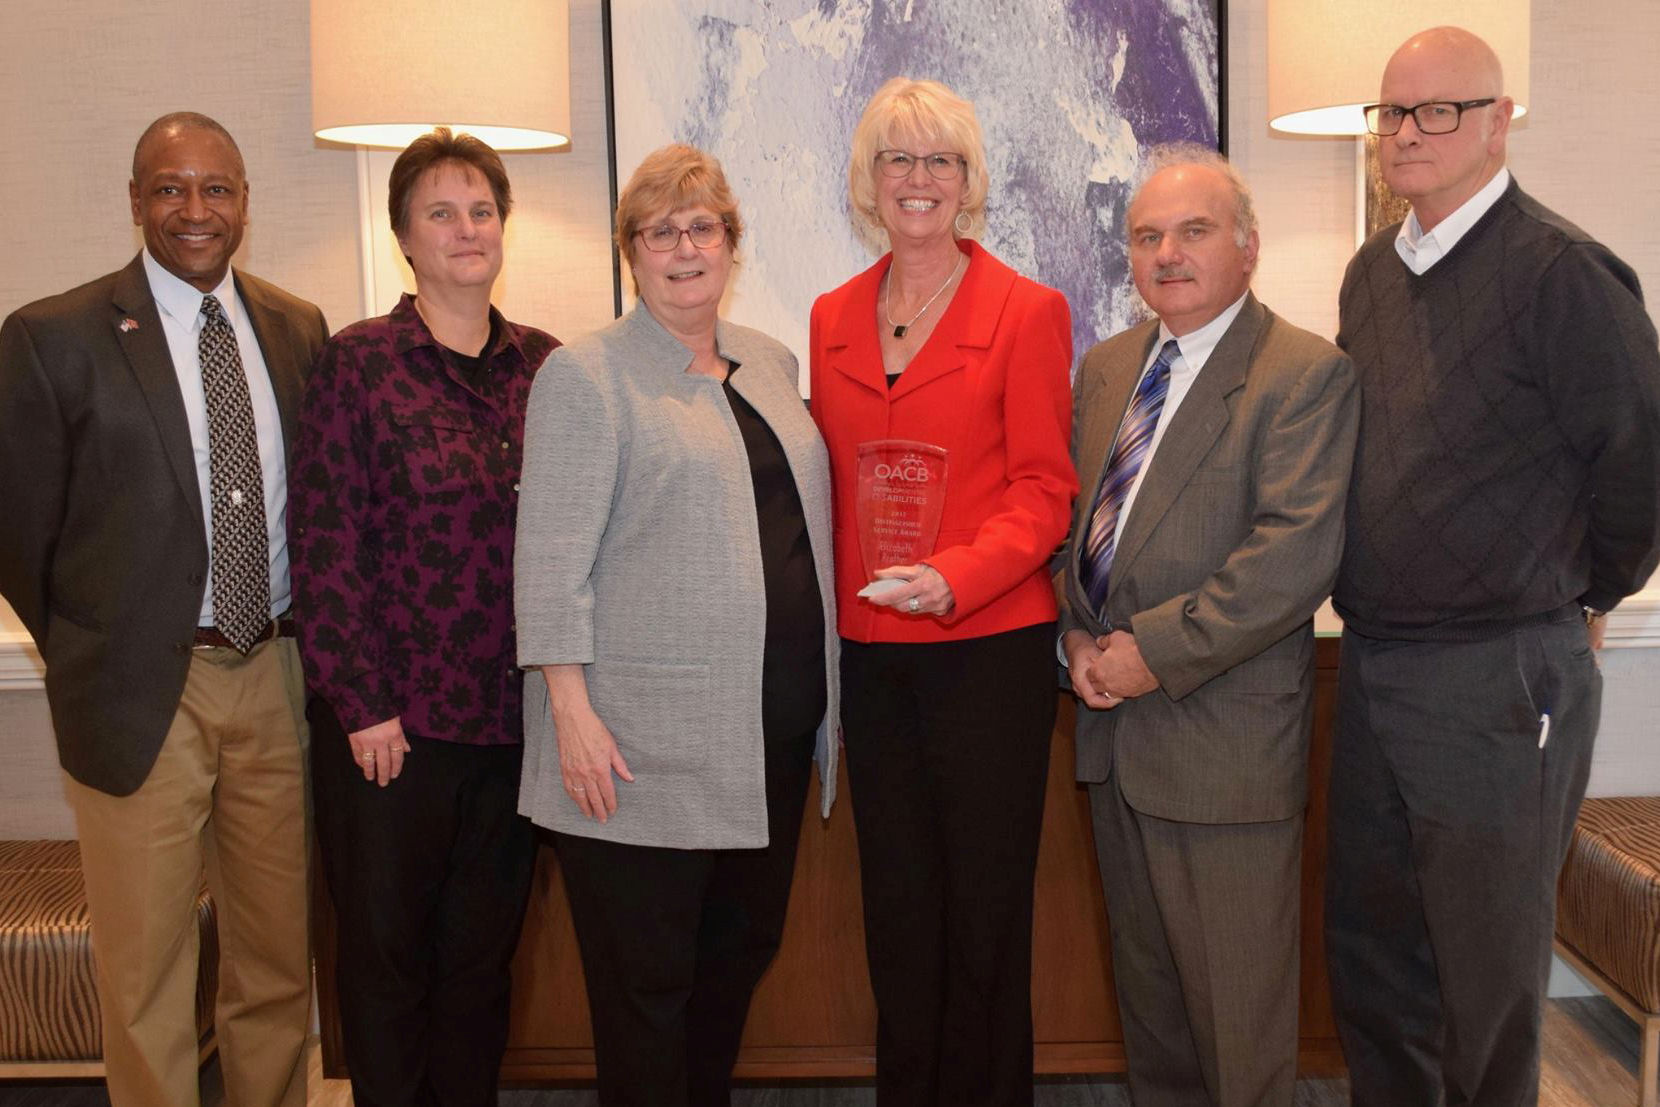 Prather honored with Distinguished Service Award from OACB